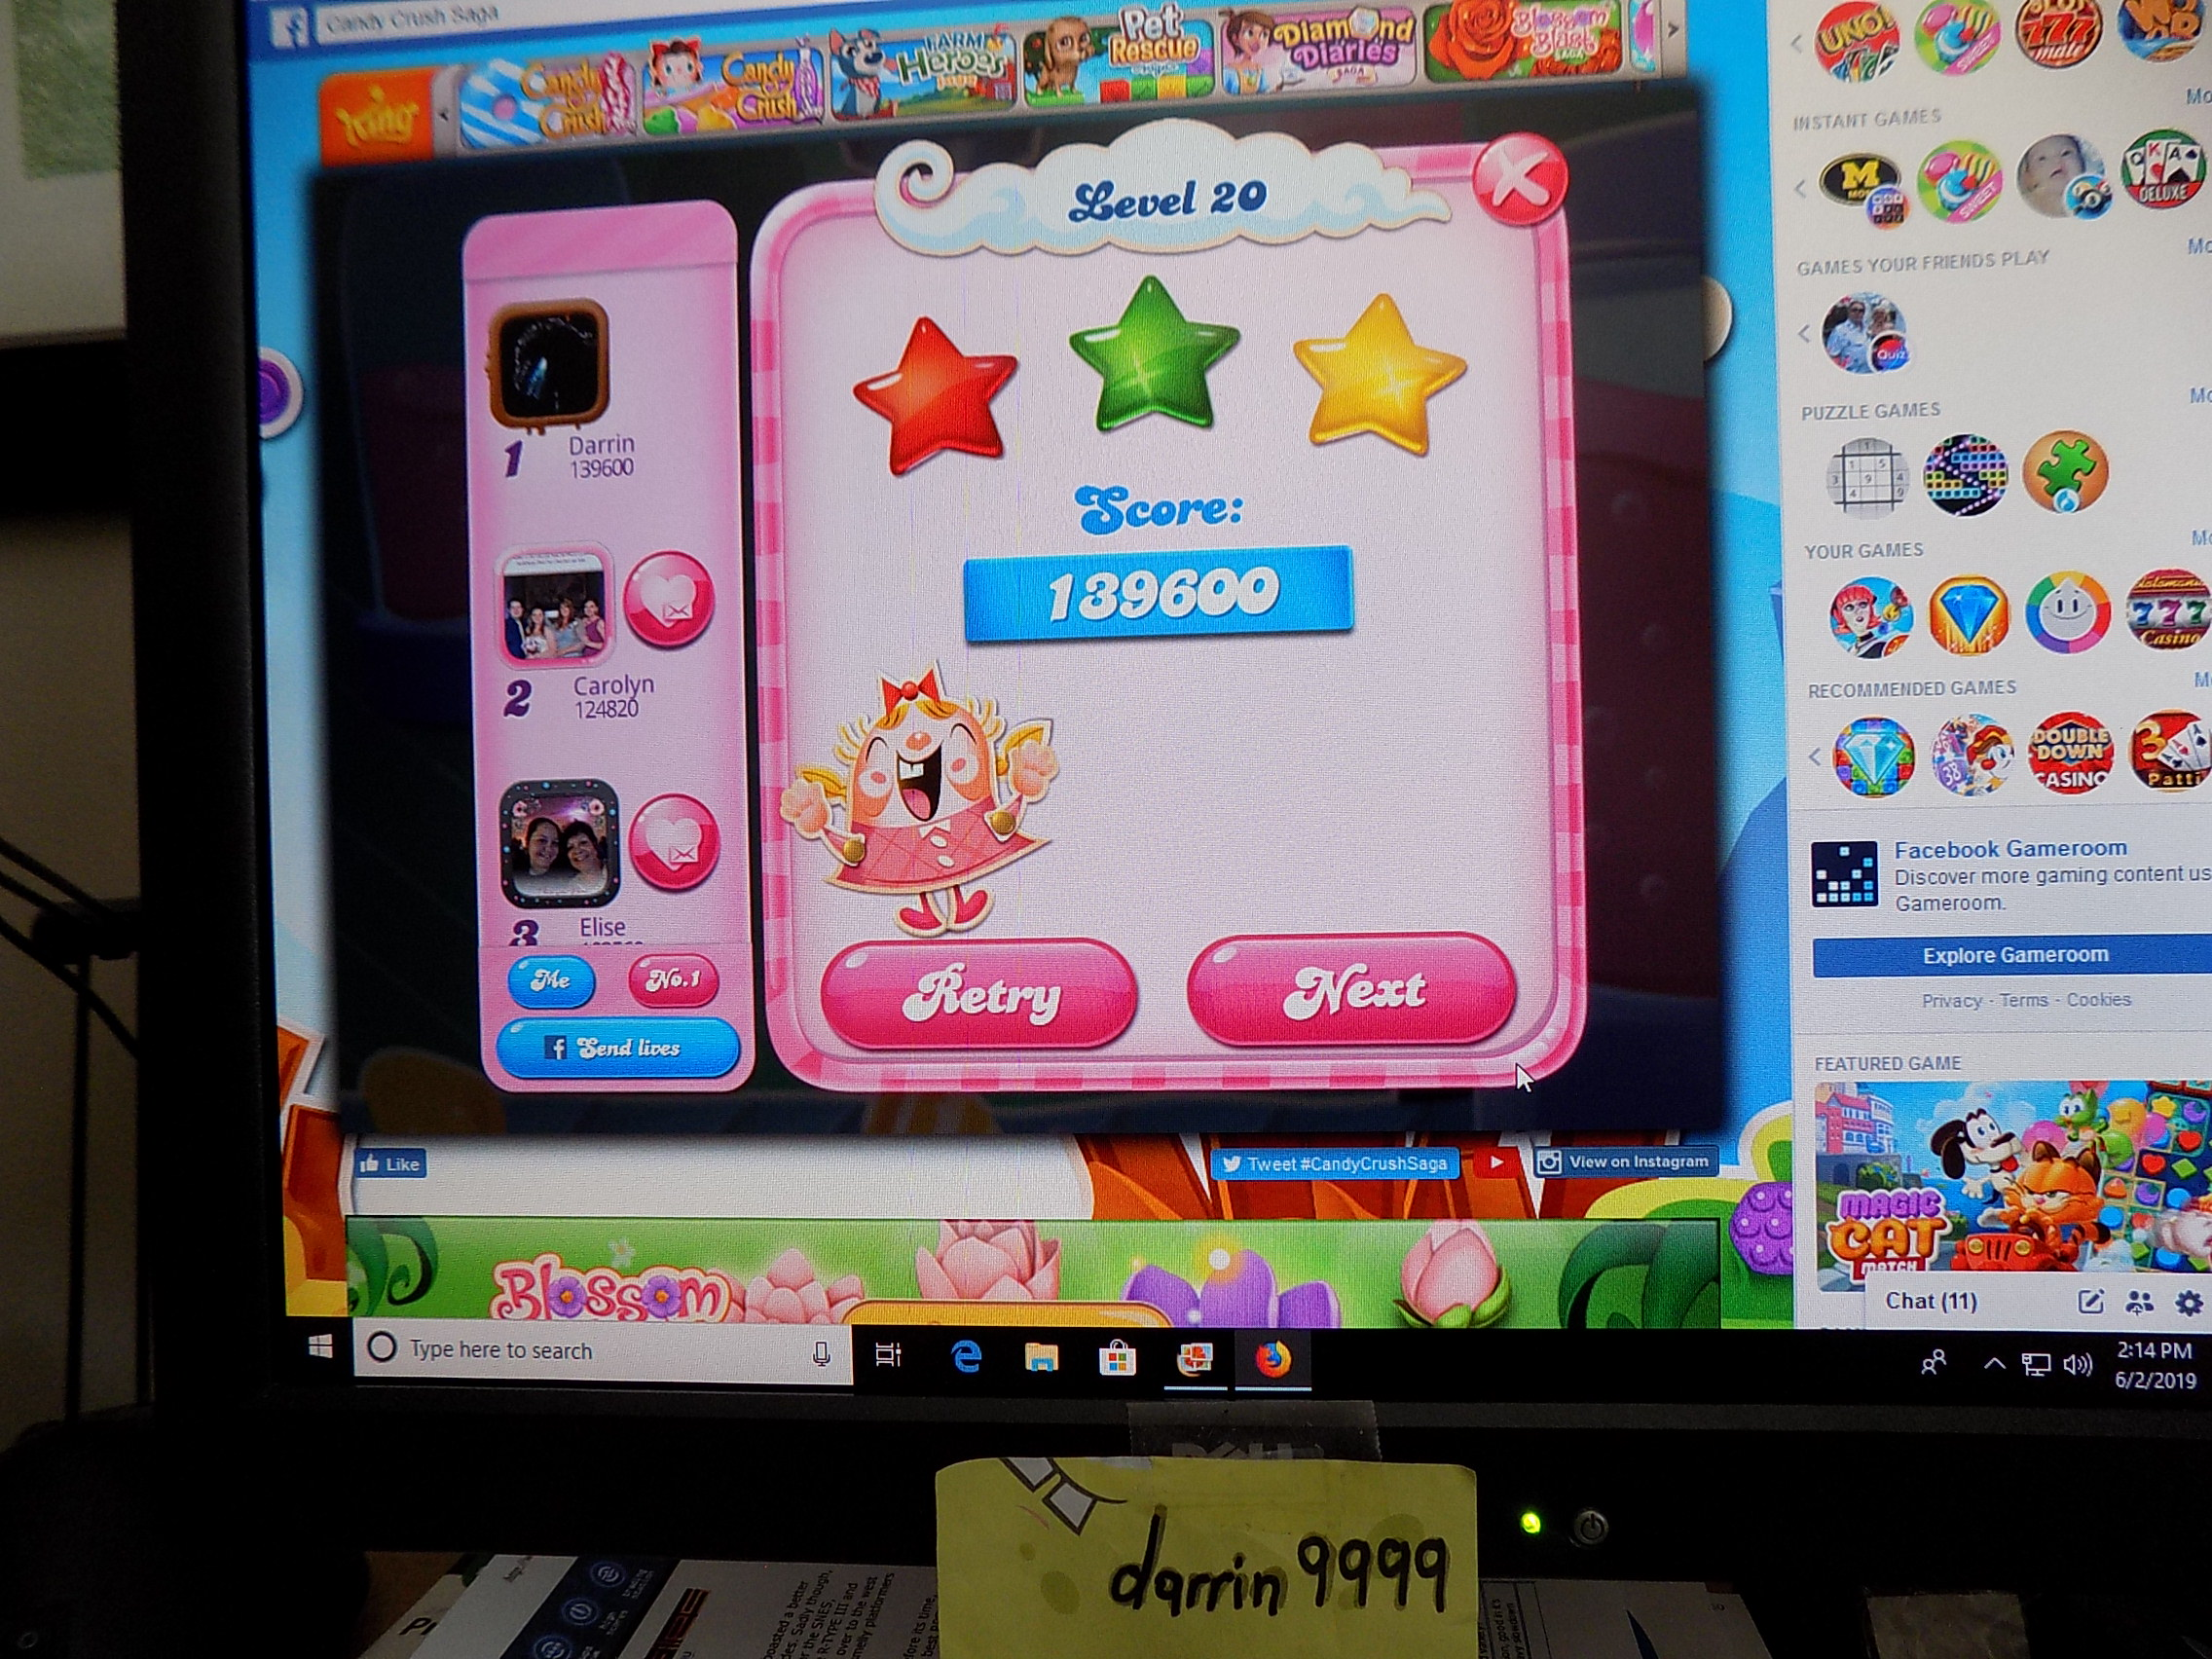 darrin9999: Candy Crush Saga: Level 020 (Web) 139,600 points on 2019-06-02 13:23:05